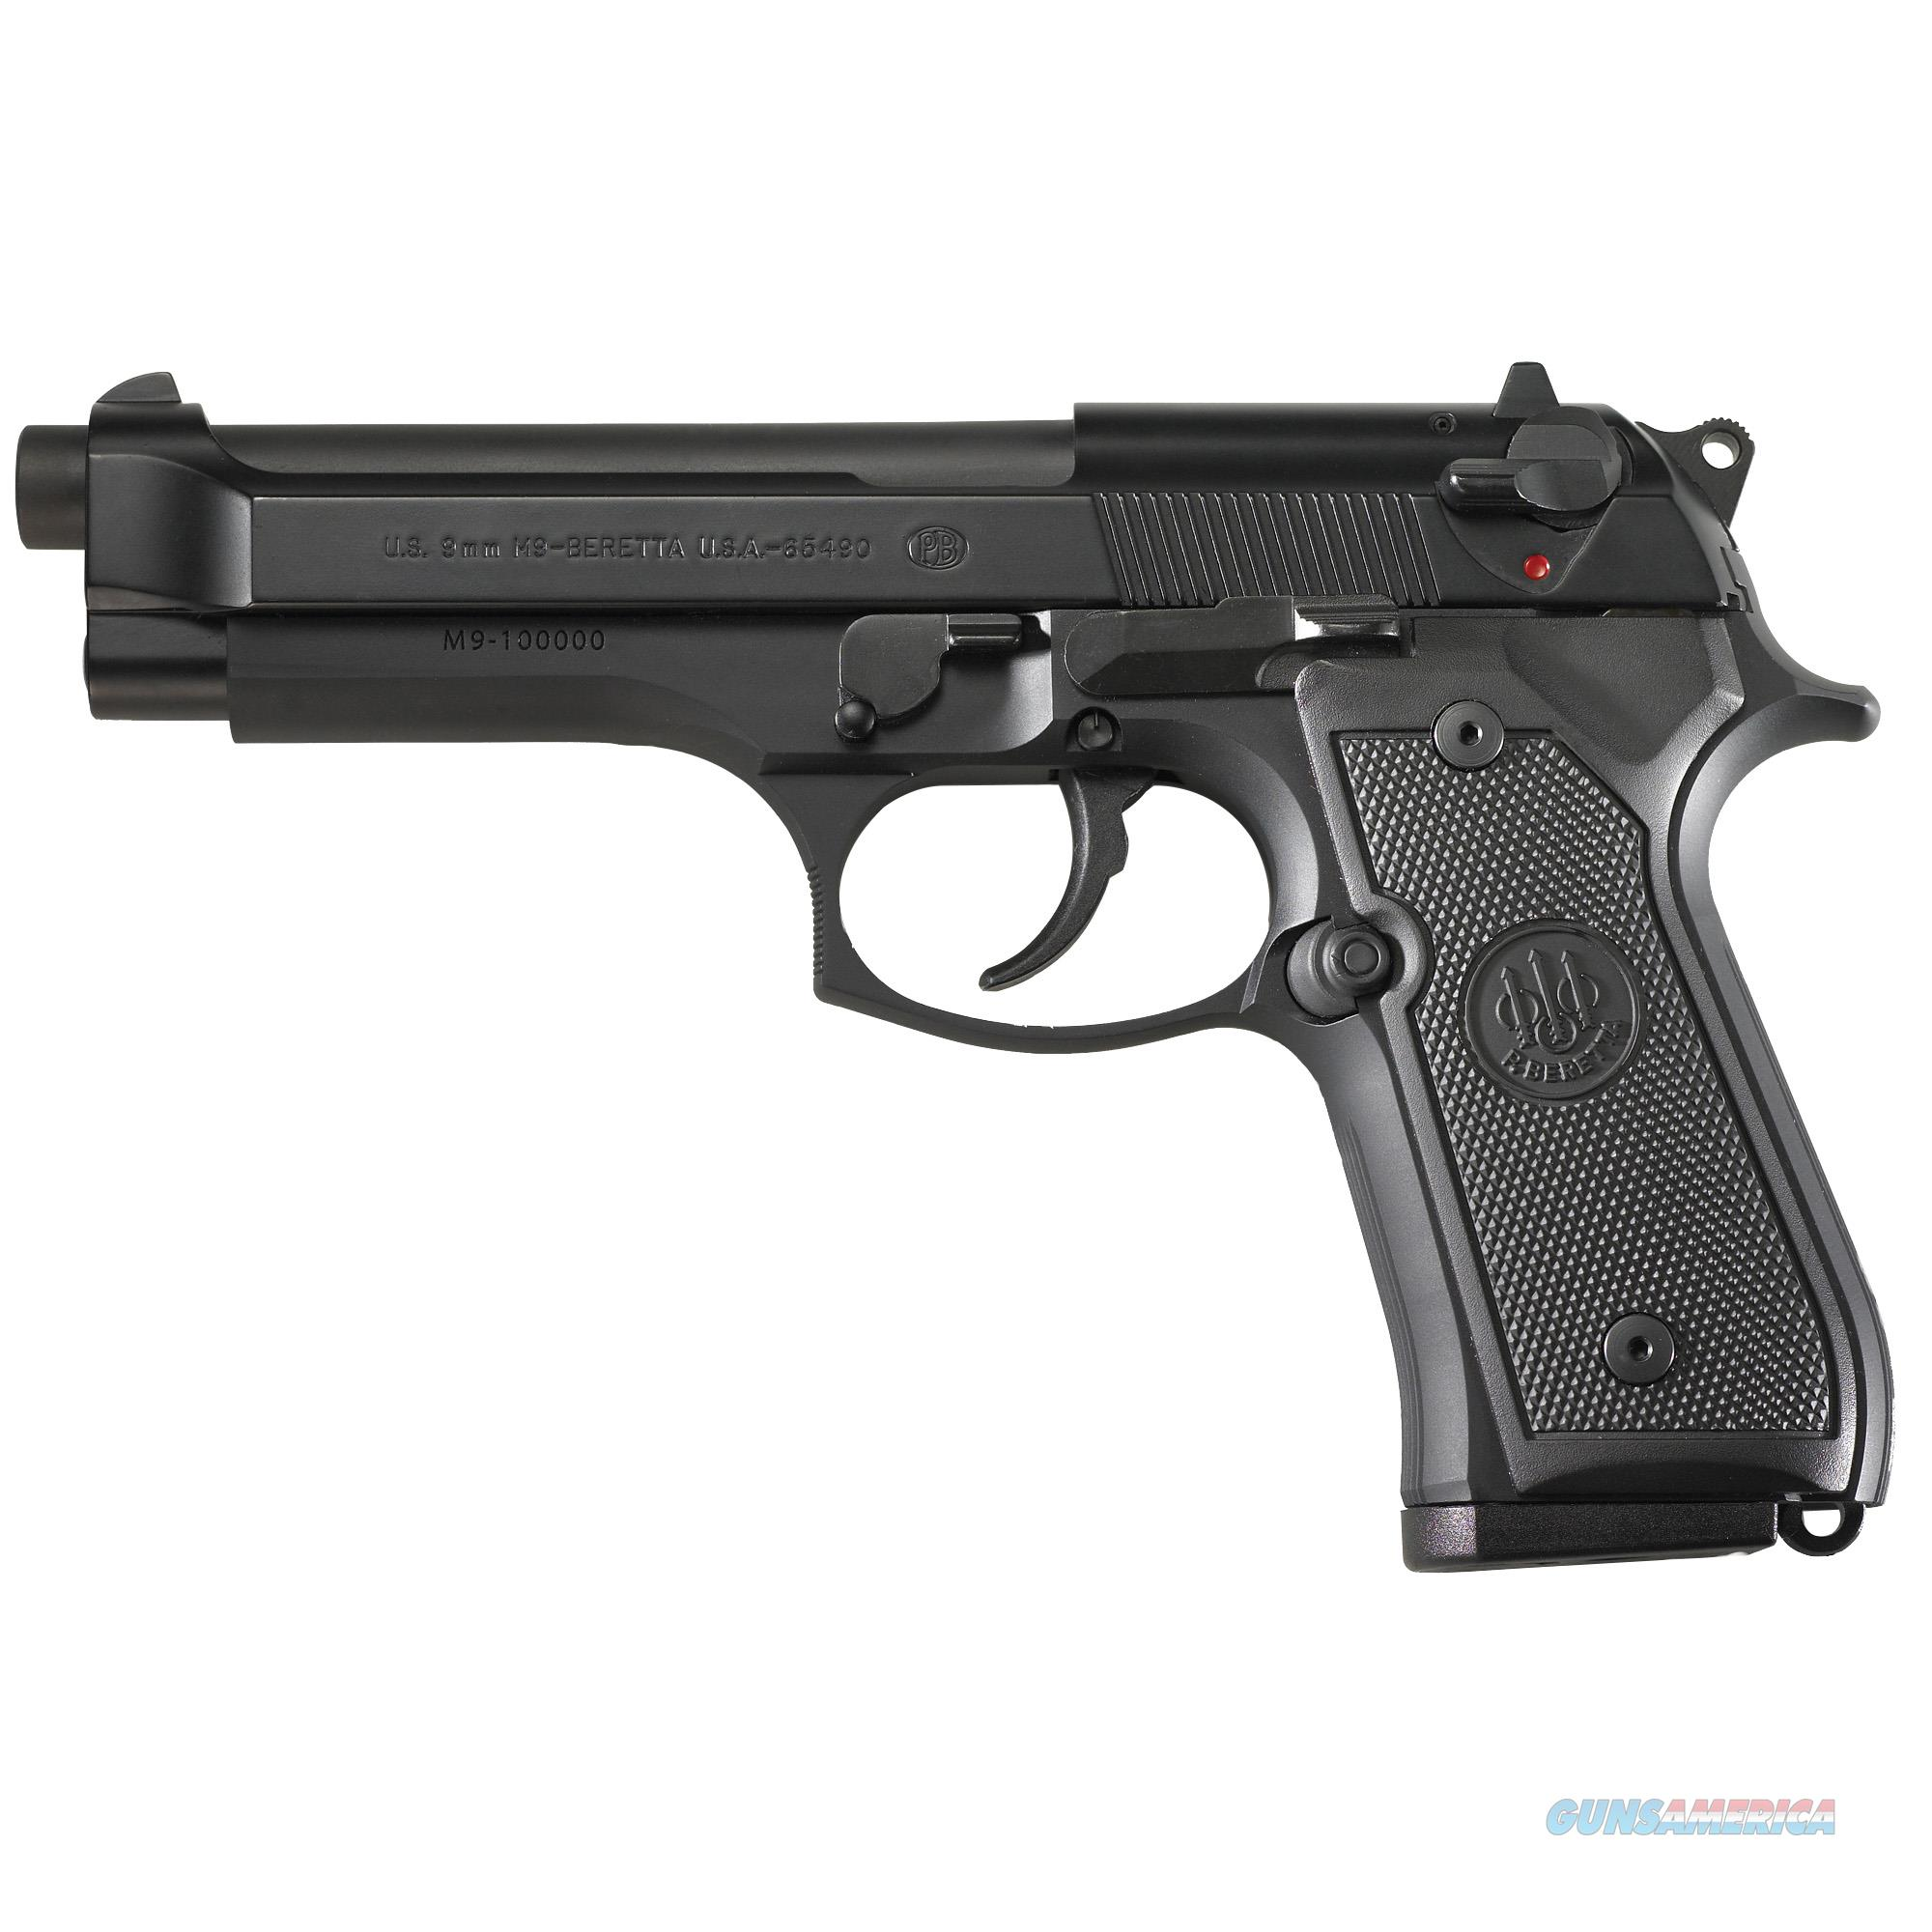 "Beretta M9 9mm 15+1 4.9"" - New in Box  Guns > Pistols > Beretta Pistols > M9"